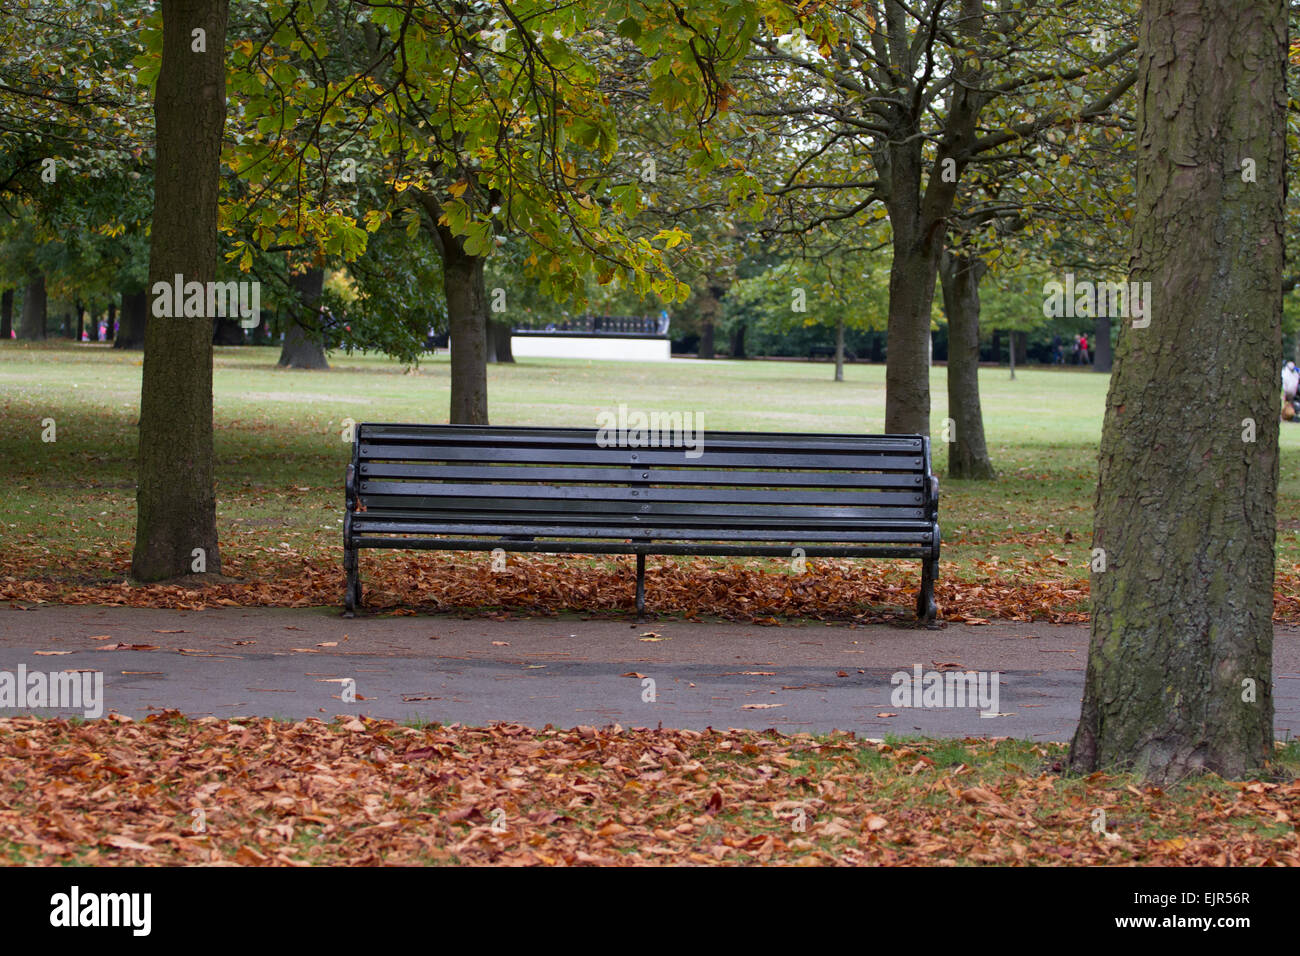 An empty bench and autumn leaves on the ground. - Stock Image